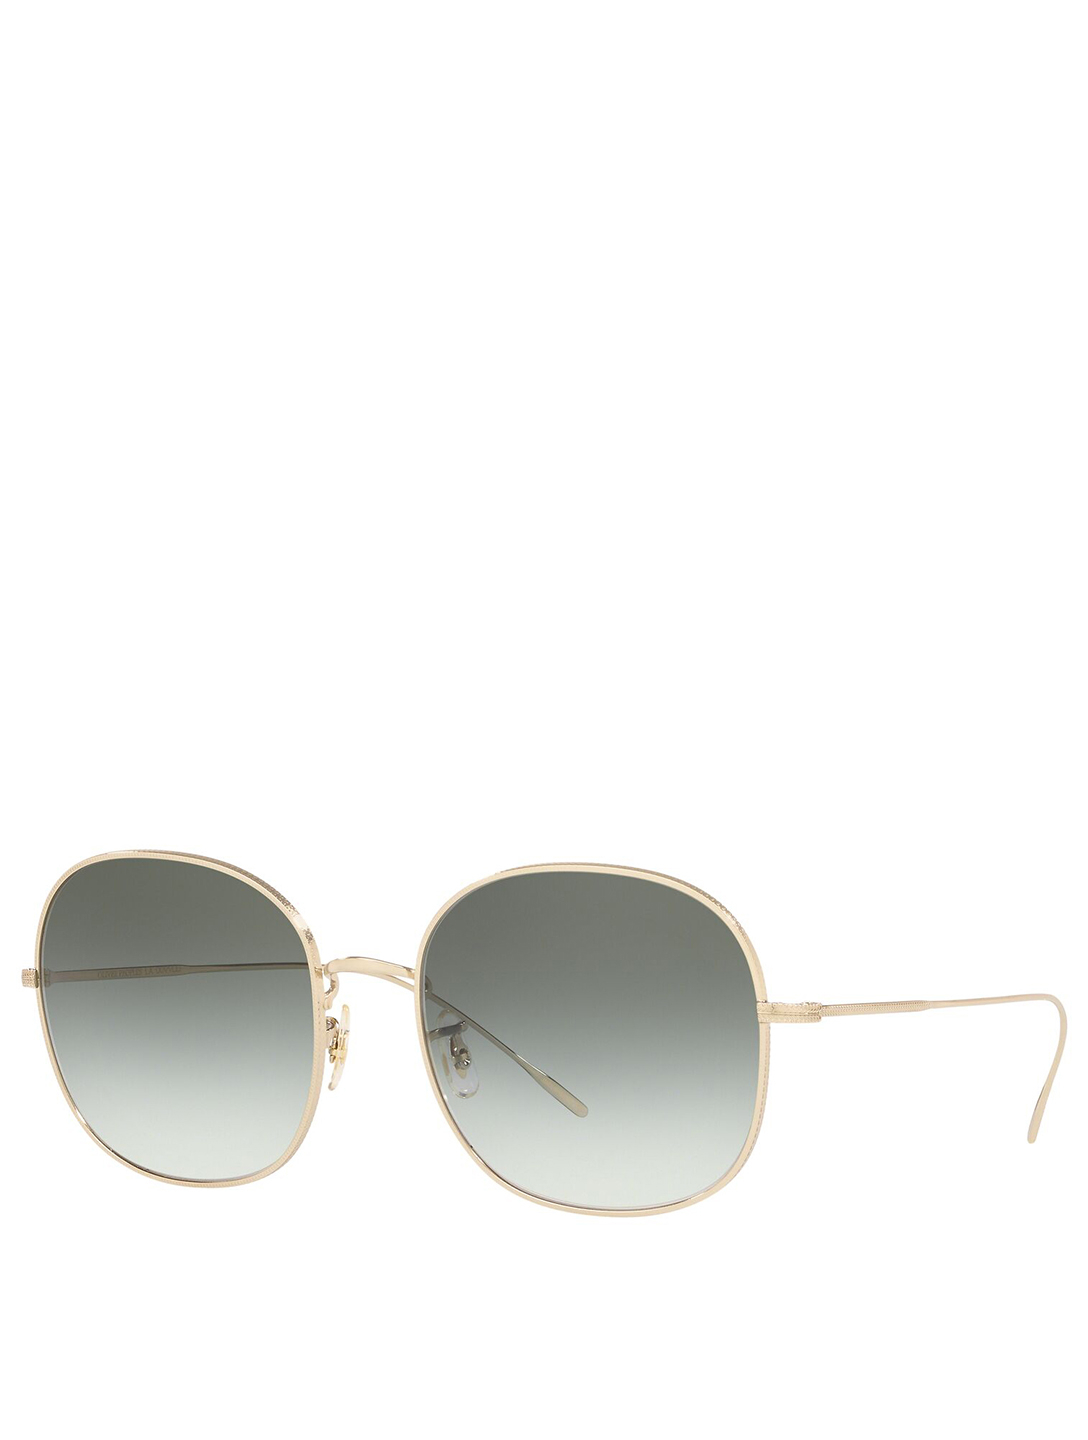 OLIVER PEOPLES Mehrie Round Sunglasses Women's Metallic